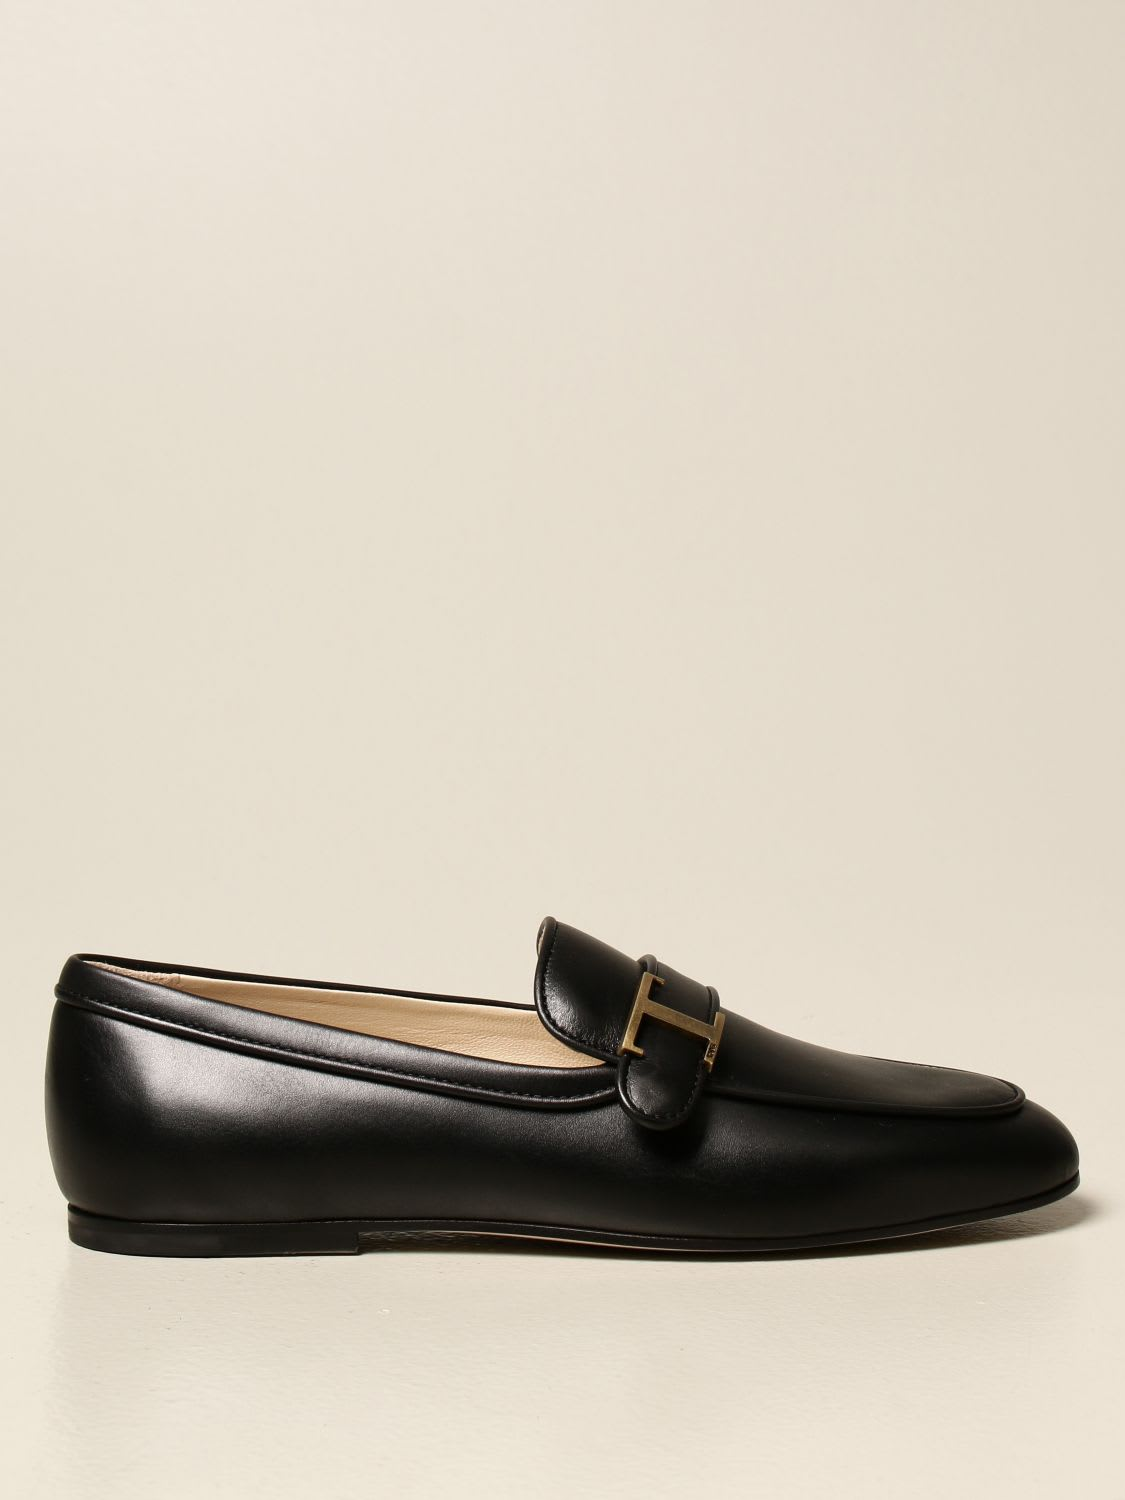 Tods Loafers Tods Loafers In Leather With Logo